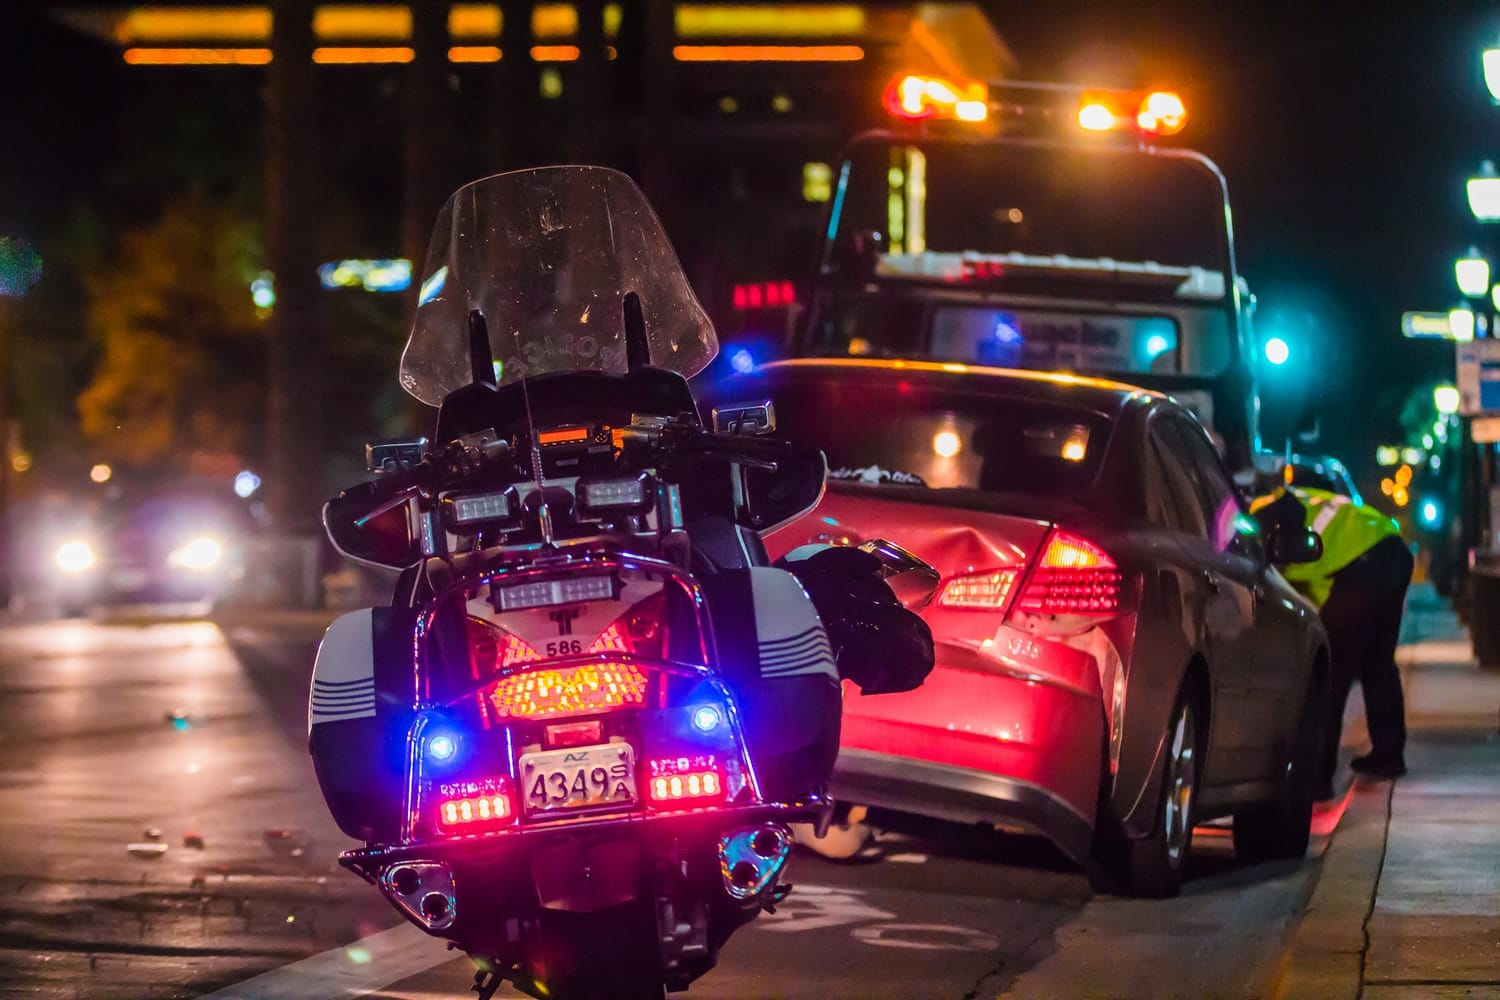 car accident with tow truck and police motorcycle